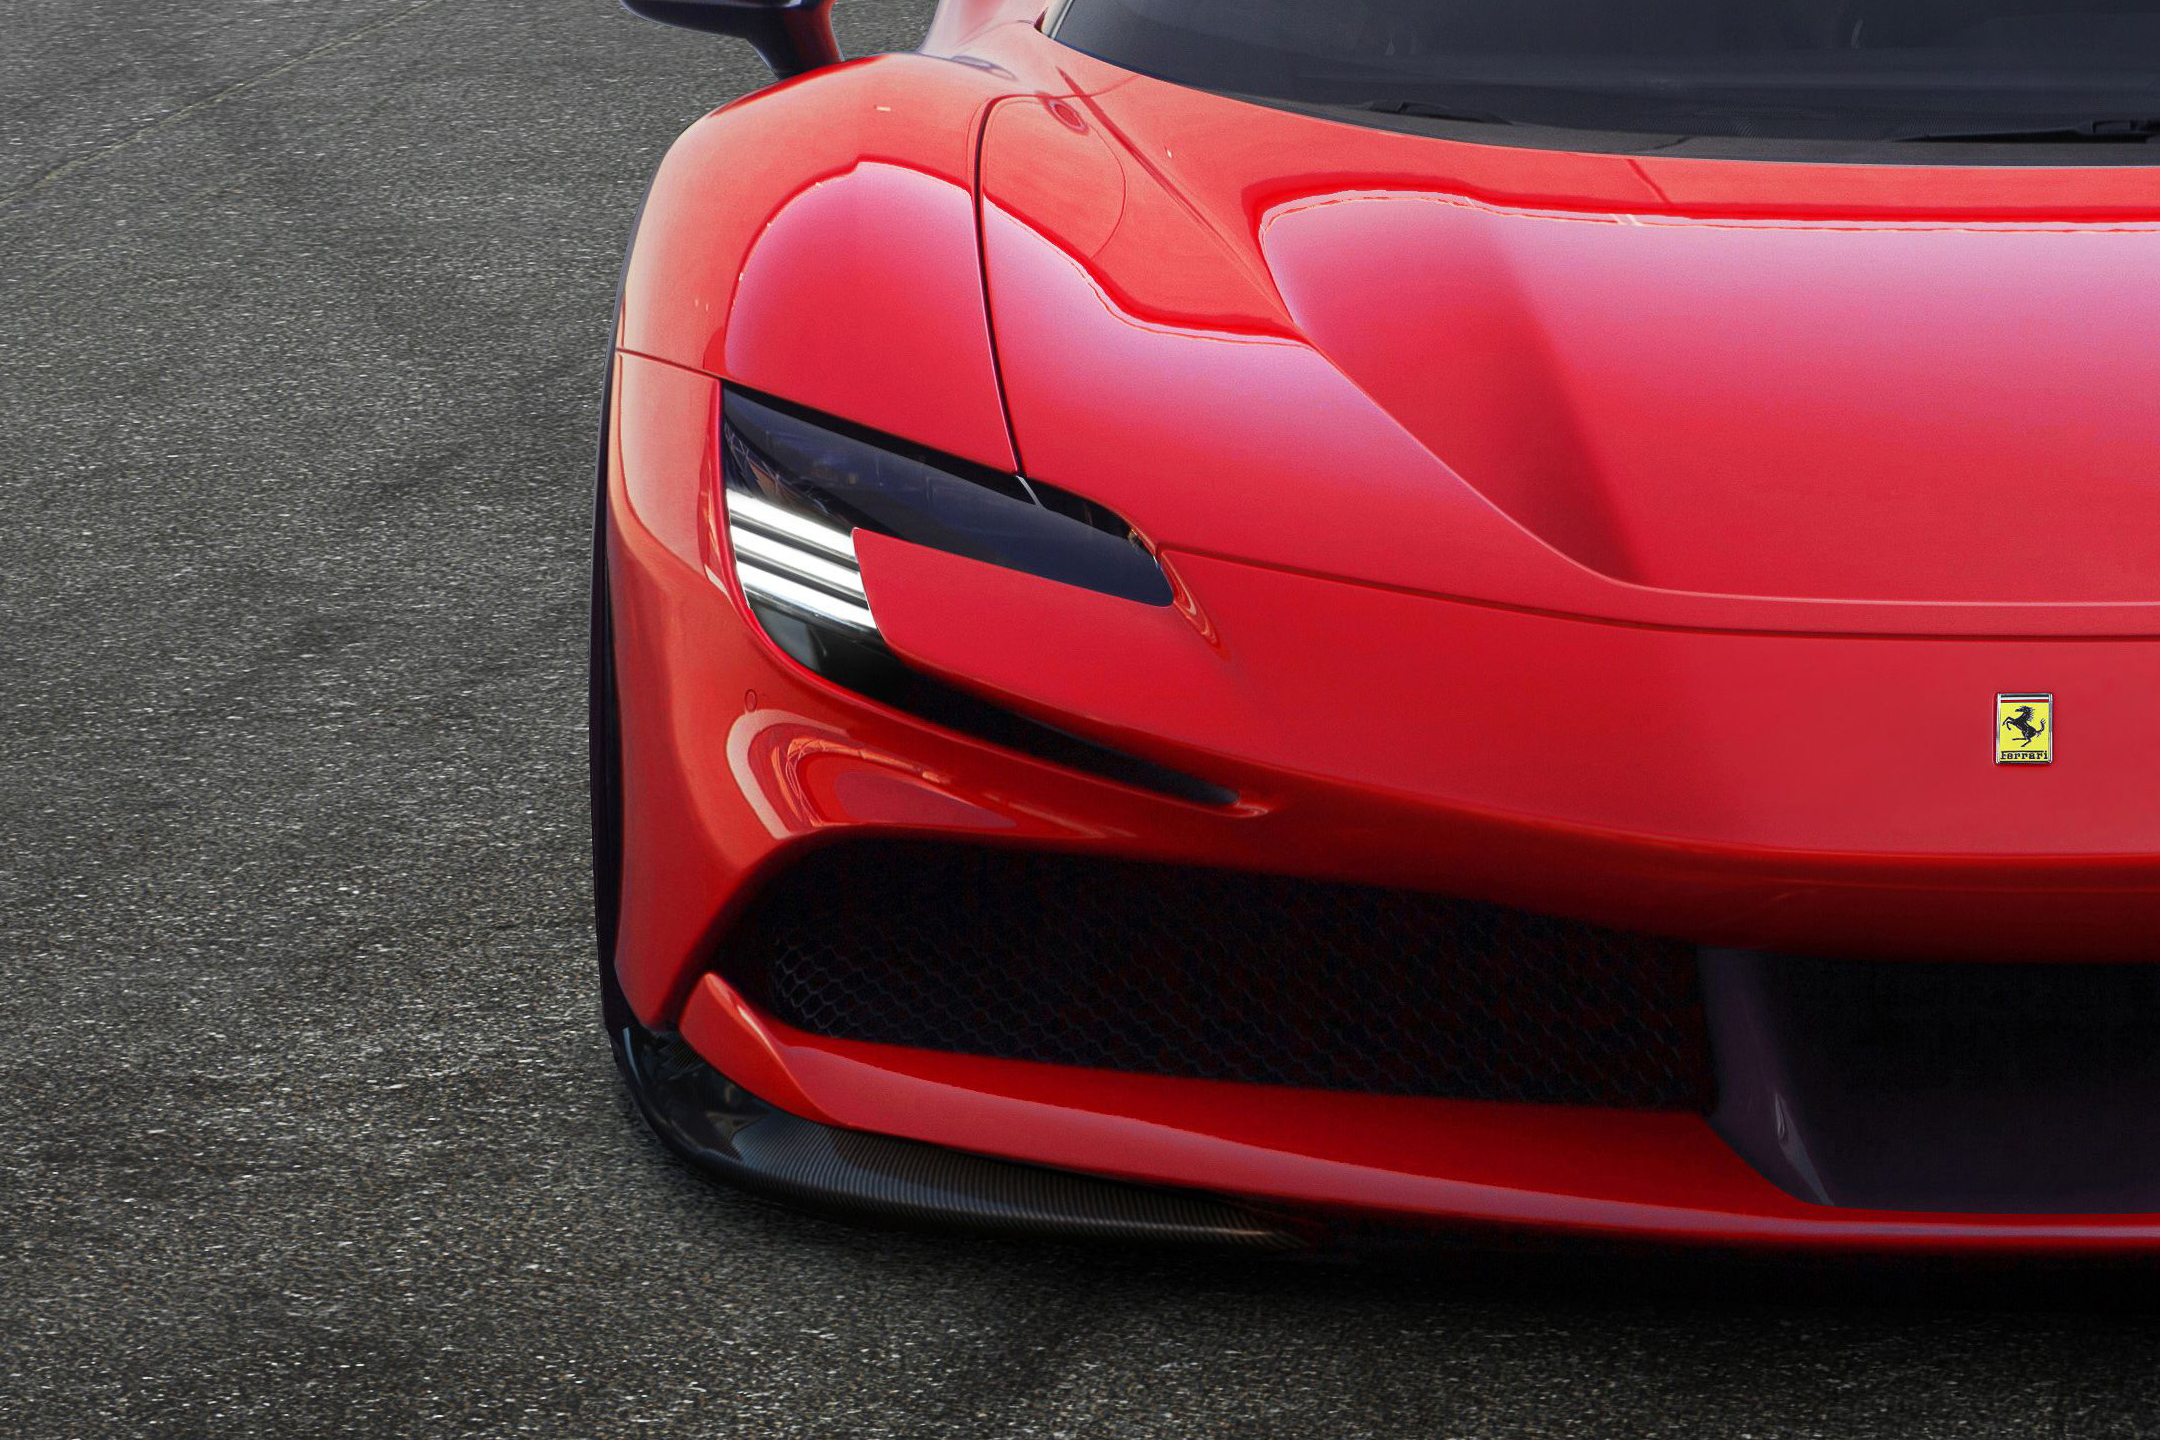 Ferrari SF90 Stradale - 2019 - front light